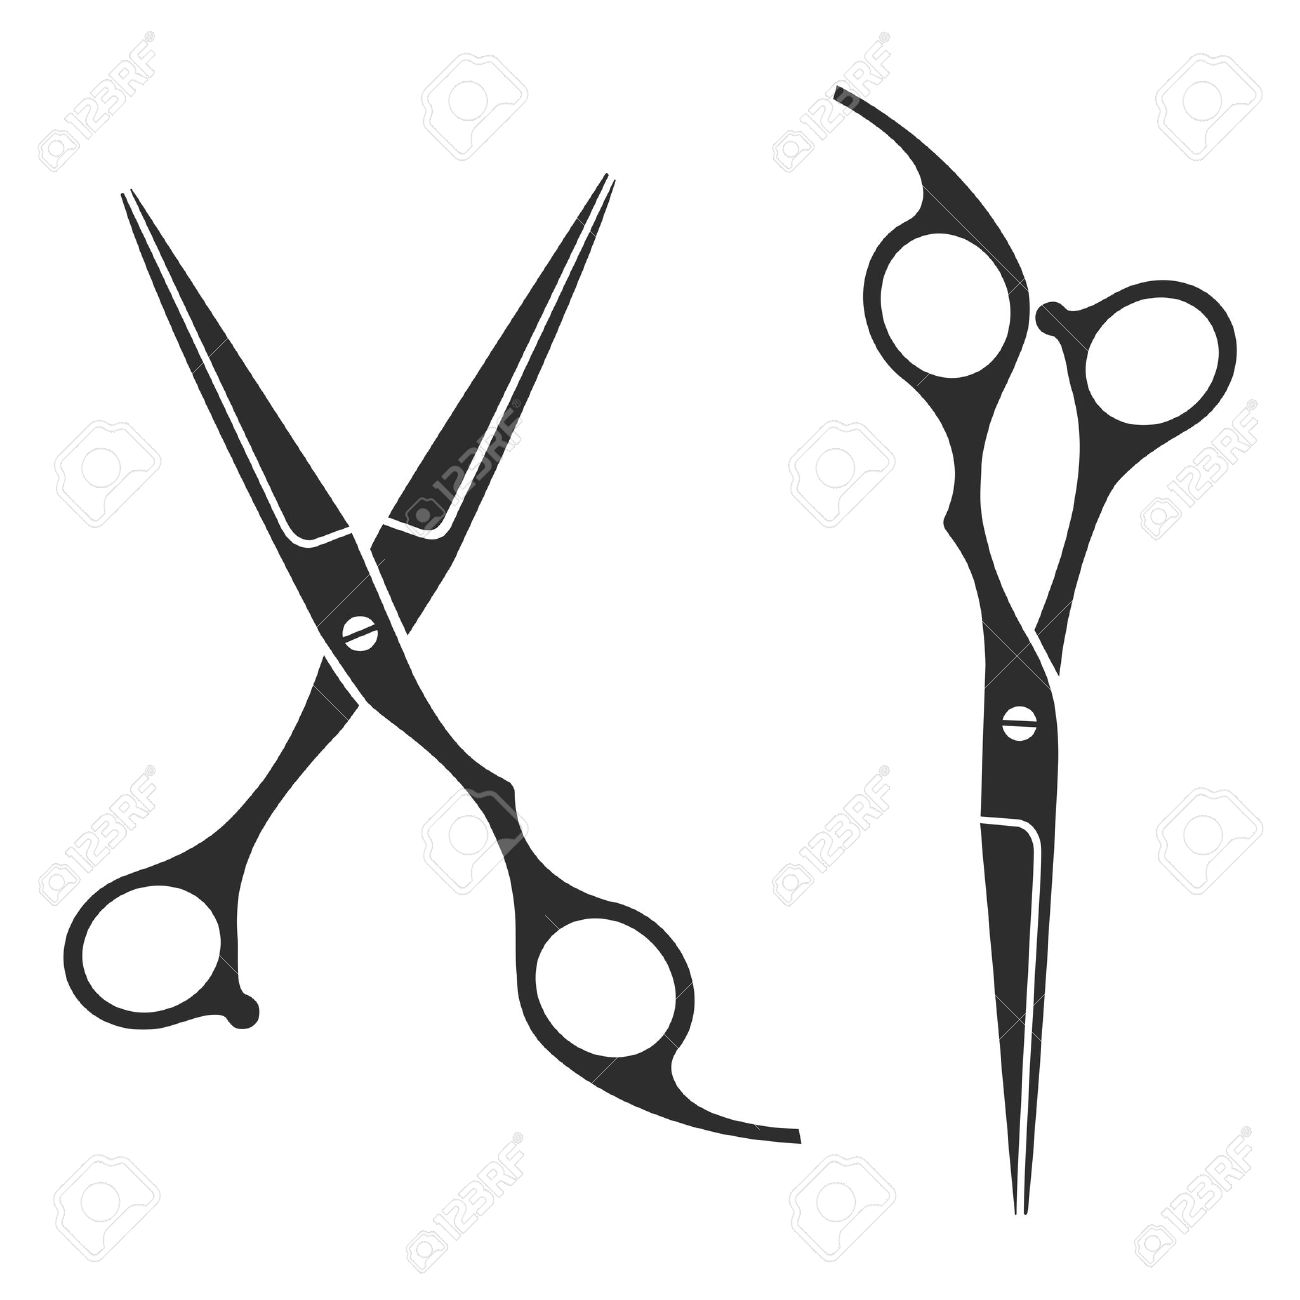 Clip art vector of vintage barber shop logo graphics and icon vector - Vector Similar Images Add To Likebox Barbershop Vintage Barber Shop Scissors Logo Label Badge